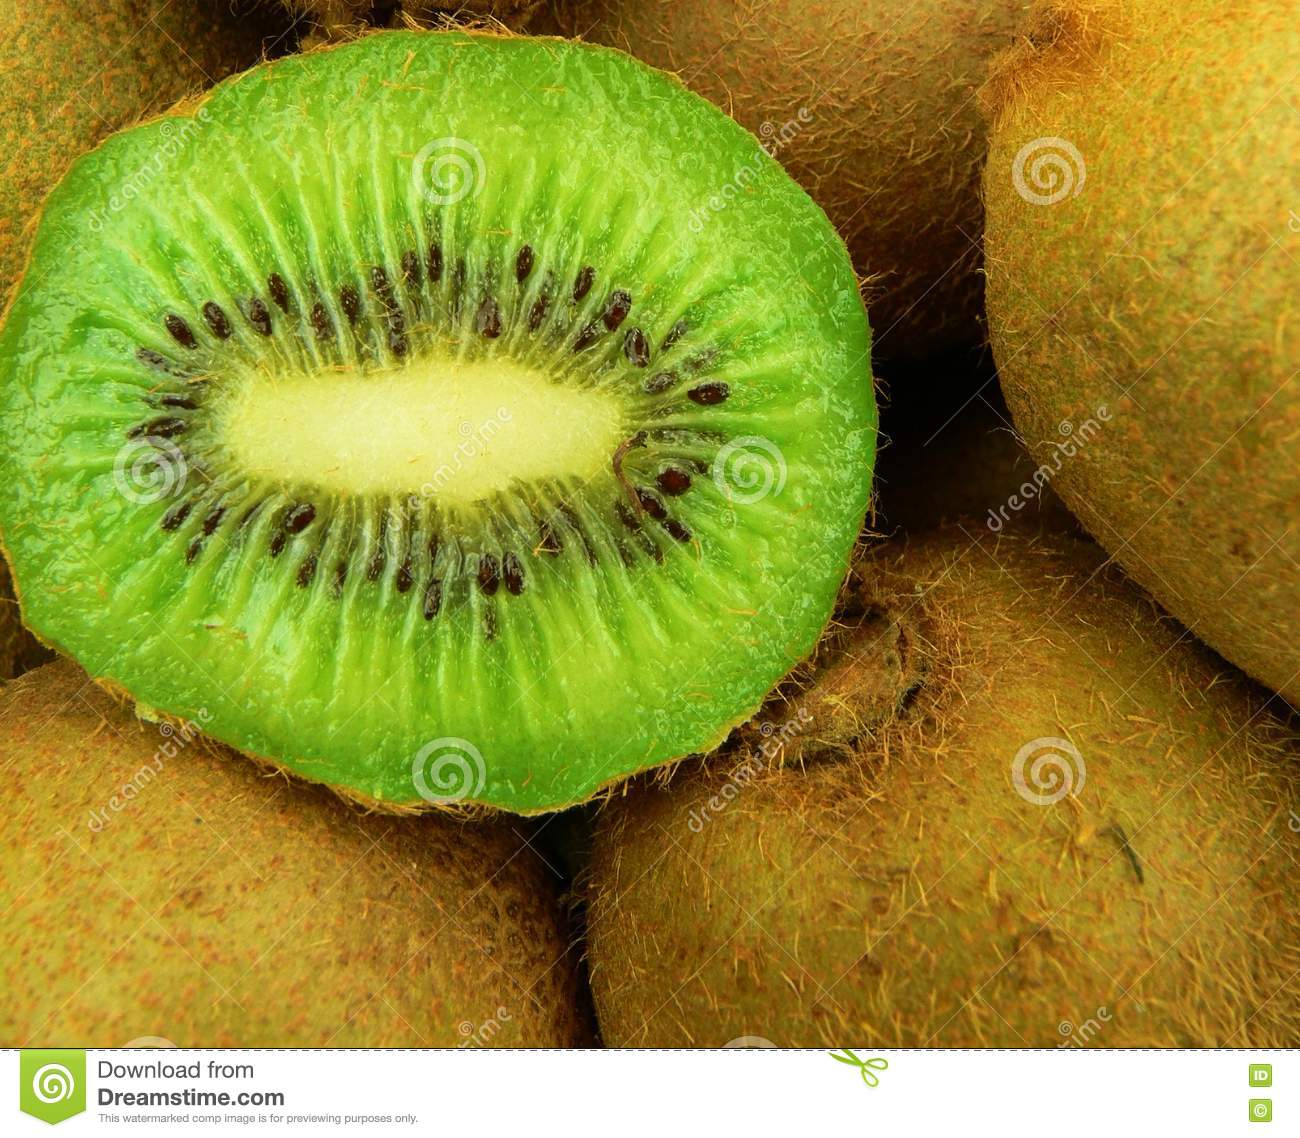 2498d1a0356 Stock Images  Kiwi Fruits Picture. Image  2338654